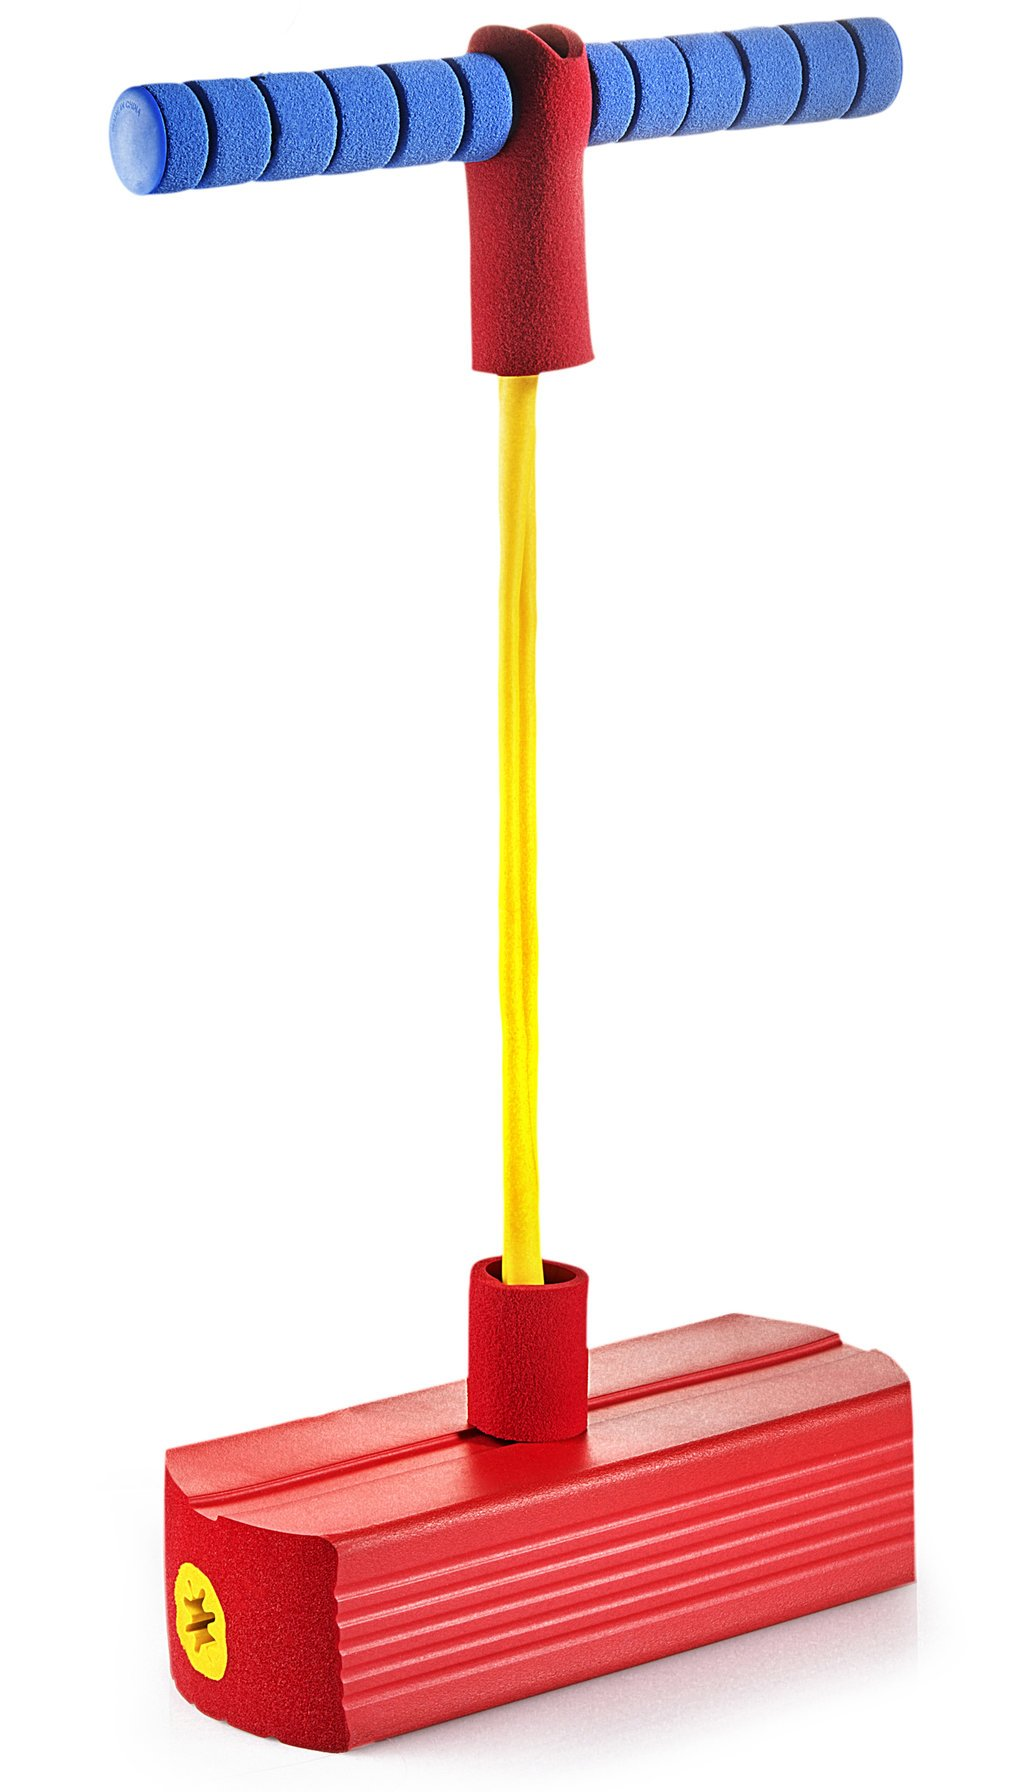 Play22 Foam Pogo Jumper for Kids - Fun and Safe Jumping Stick - Pogo Stick for Kids and Adults - Pogo Jump Makes Squeaky Sounds - Holds Up to 250 LBS - Great Gift for Boys and Girls - Original by Play22